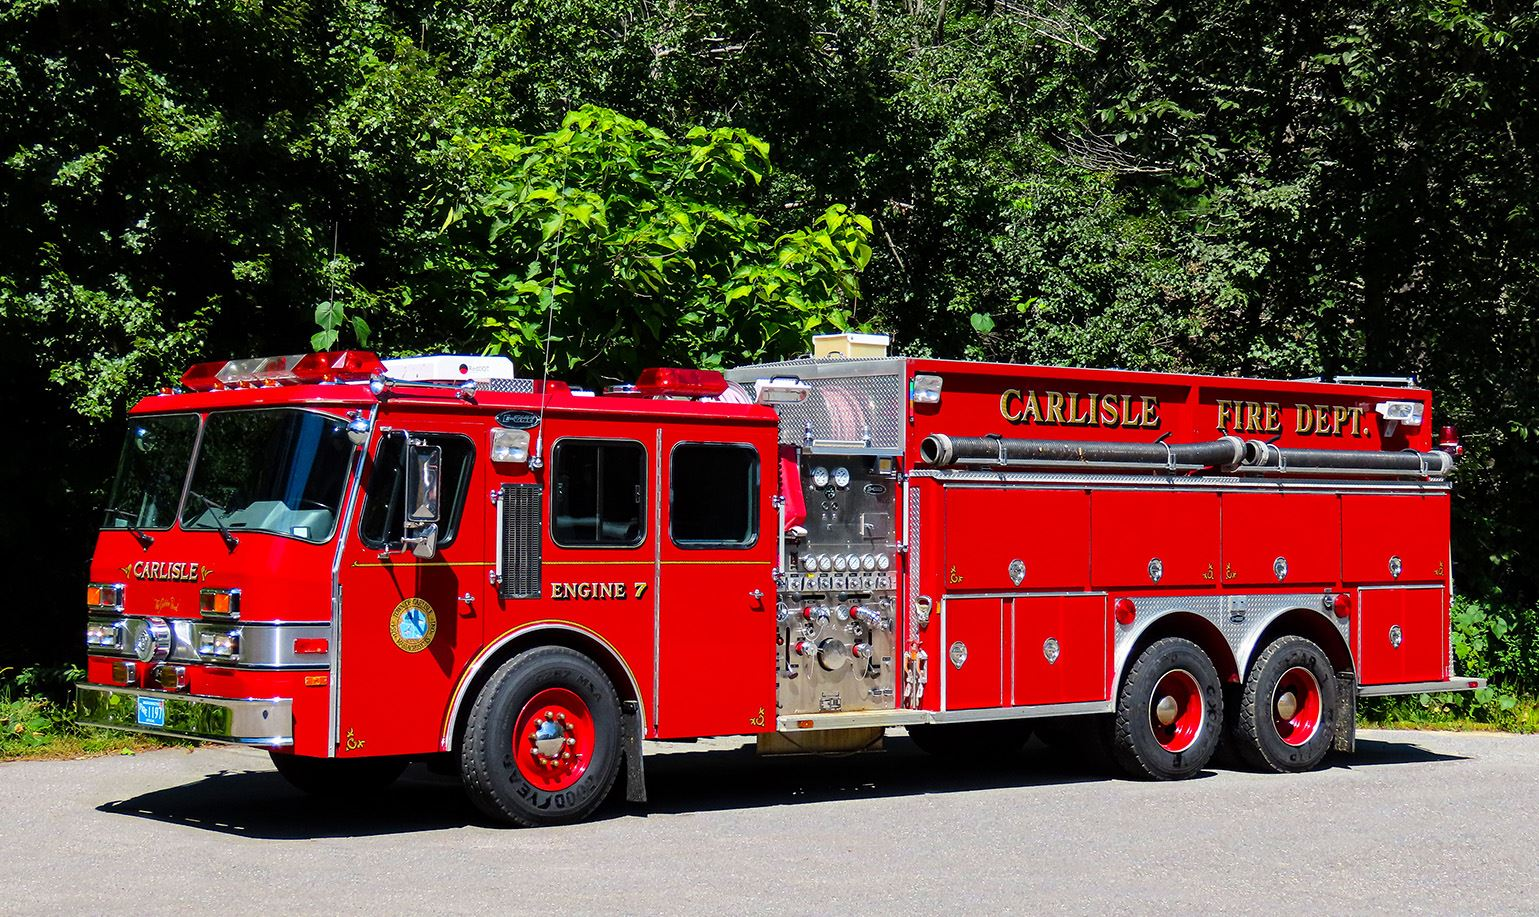 Carlisle Engine 7